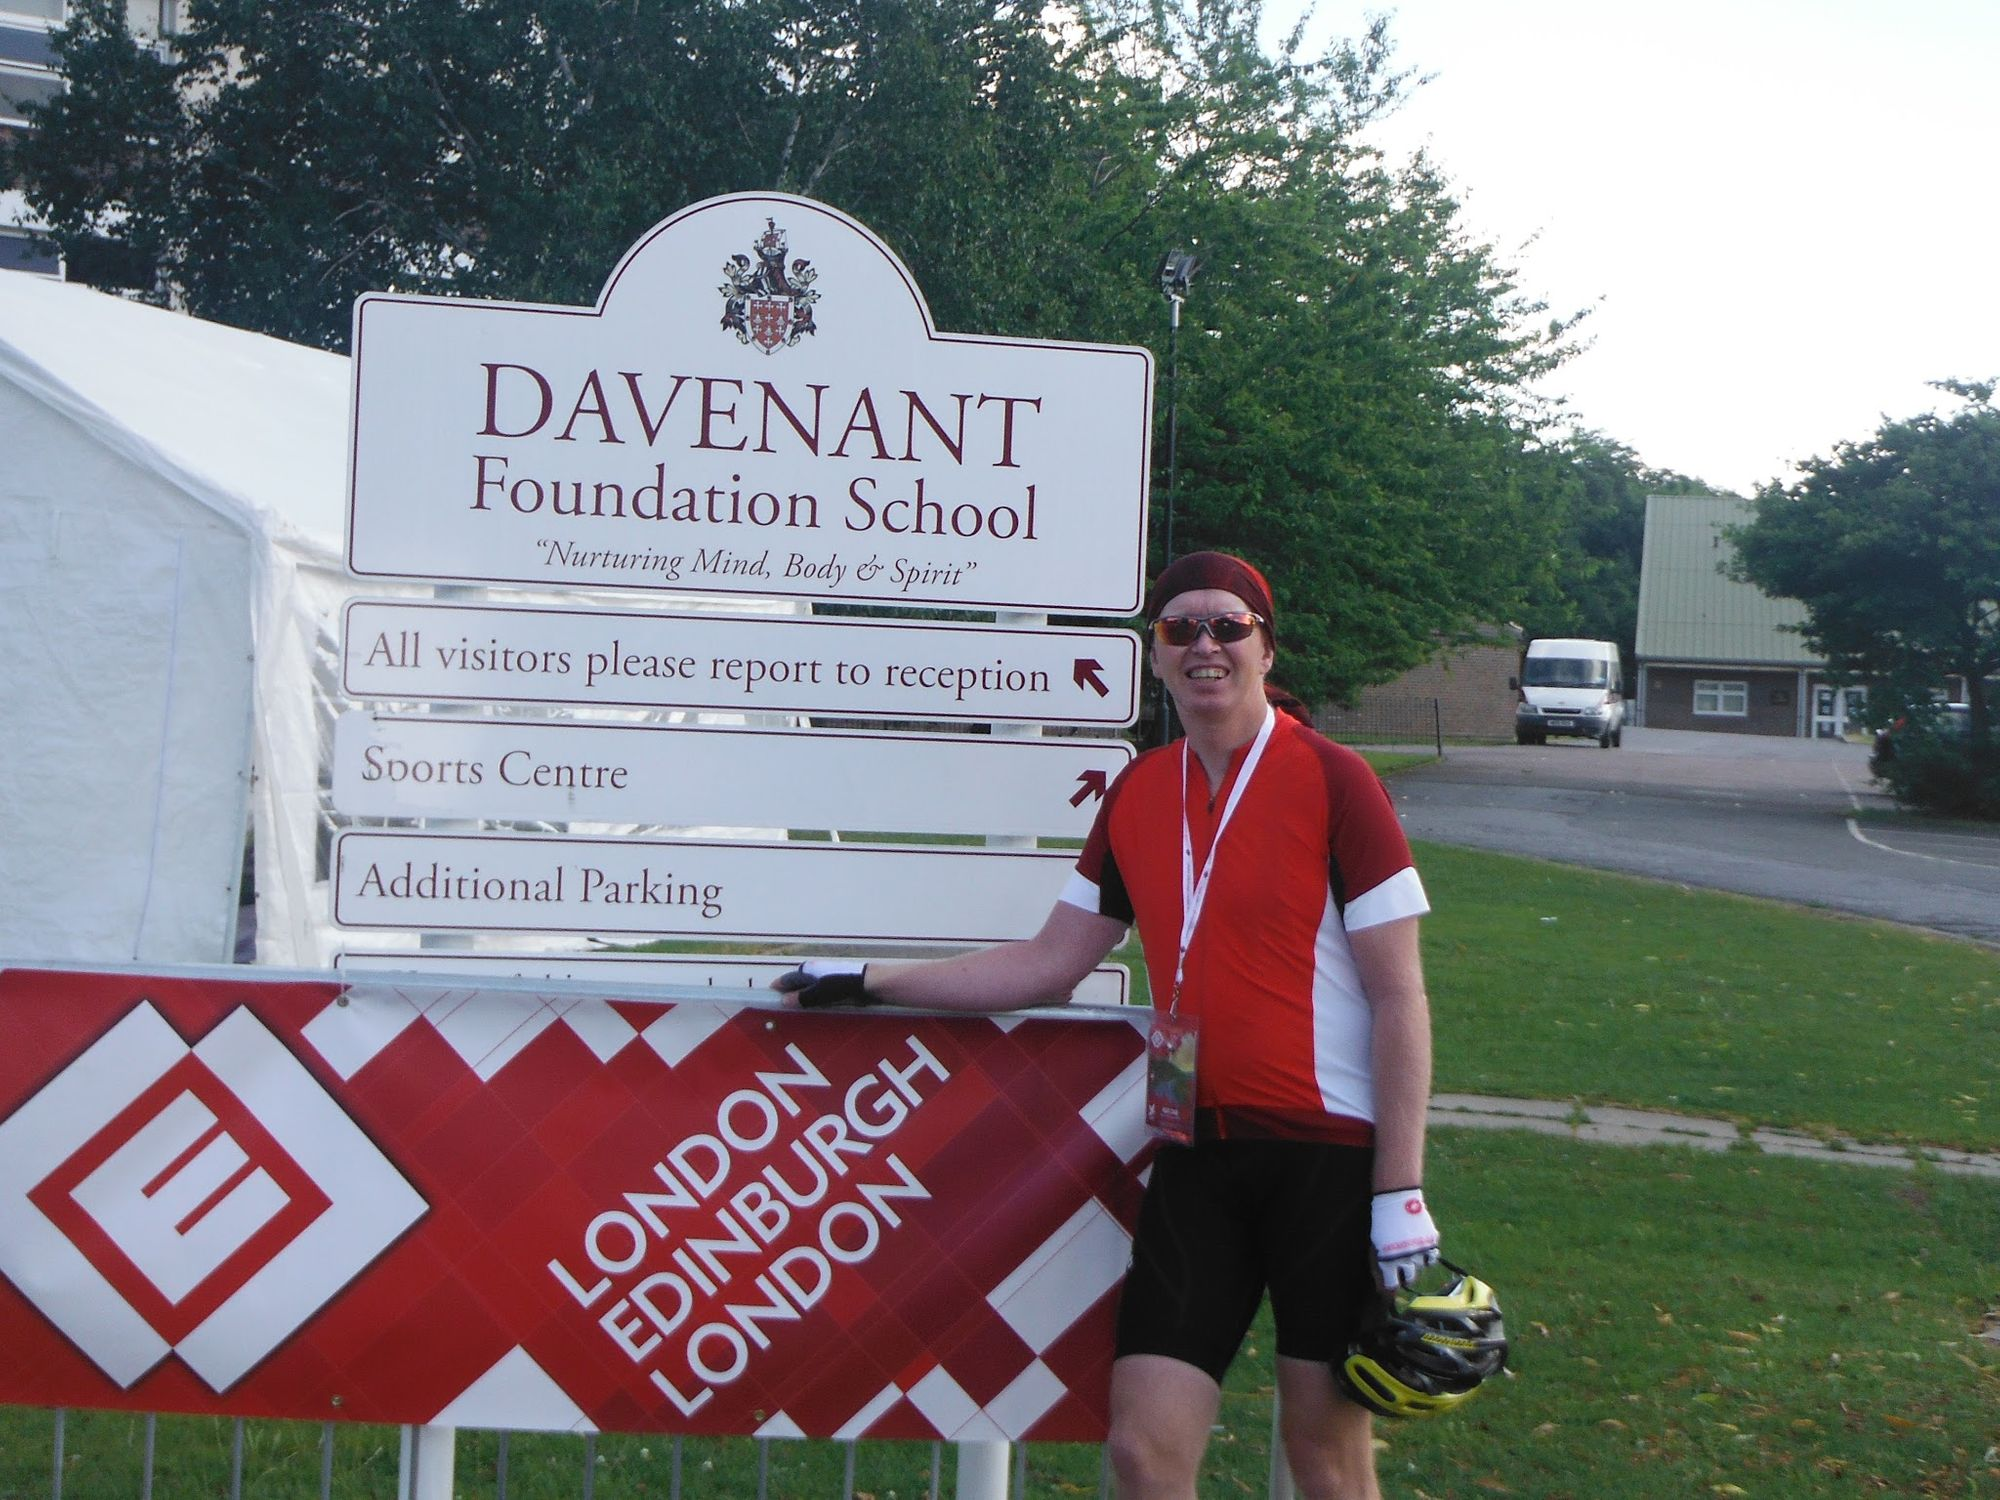 At the start, Loughton